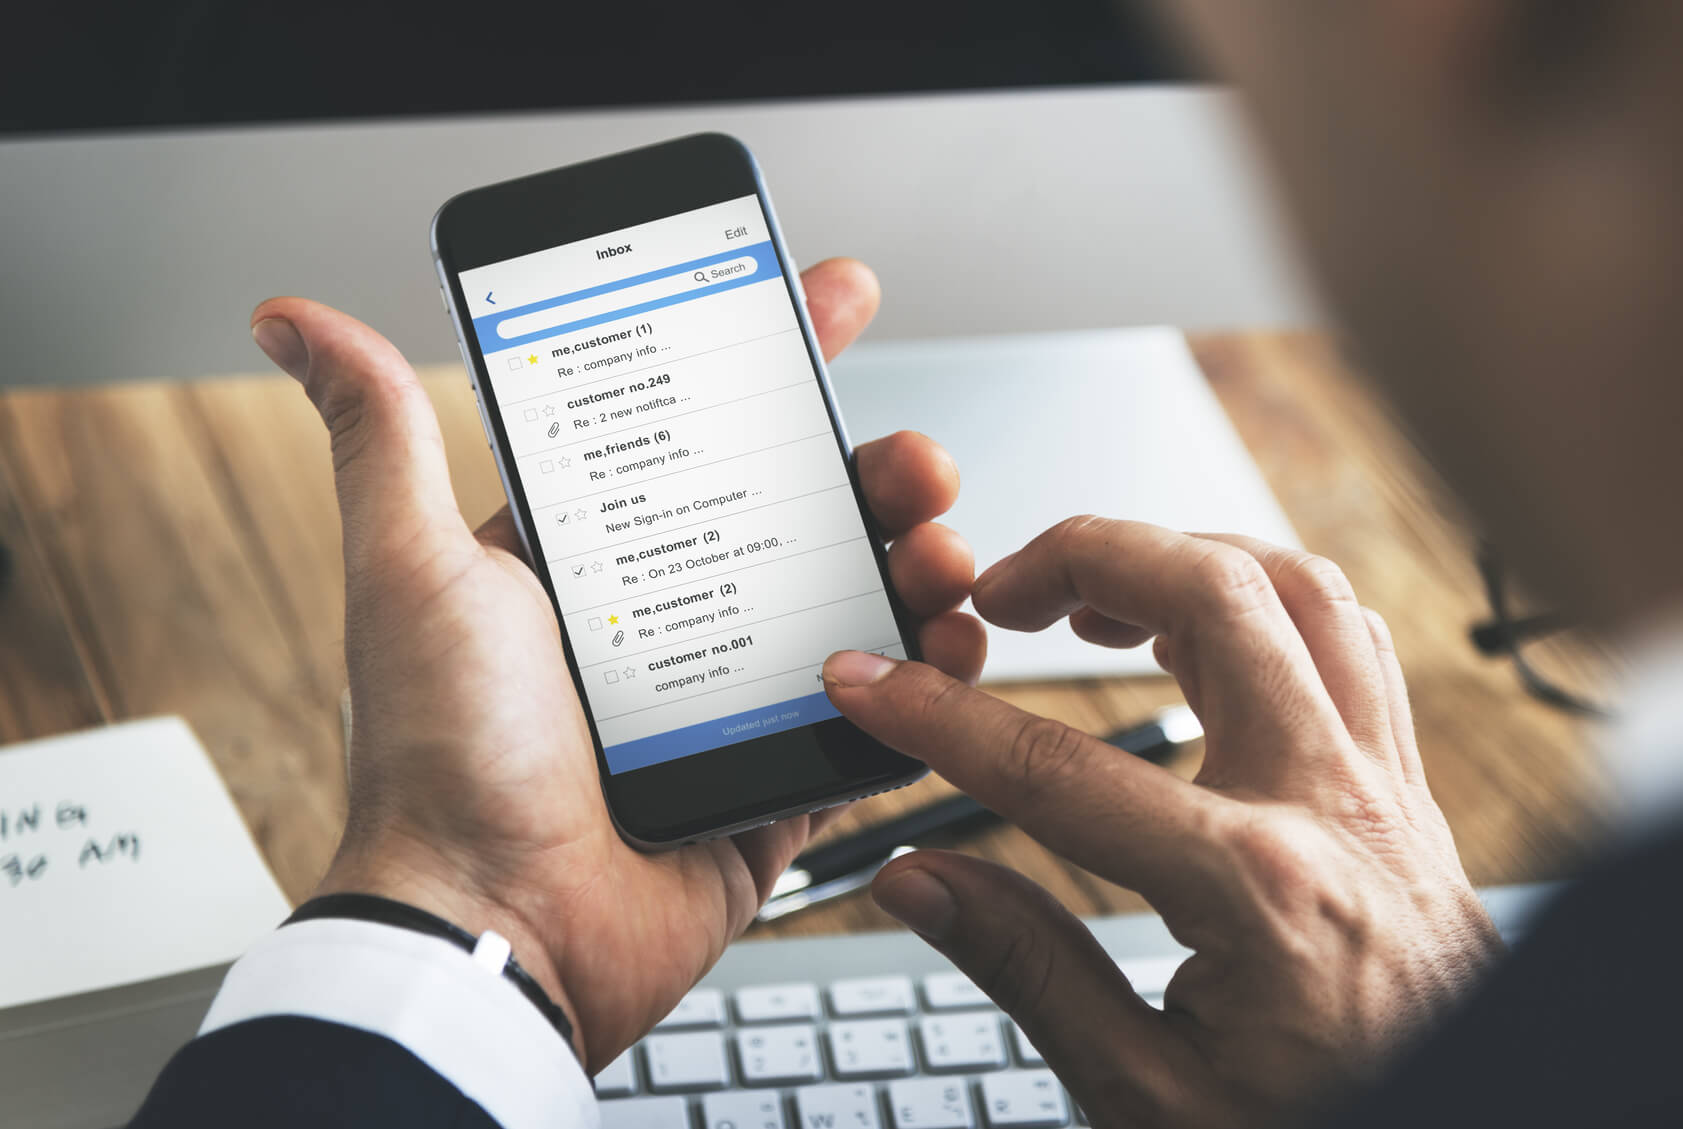 How to set up email account on a device